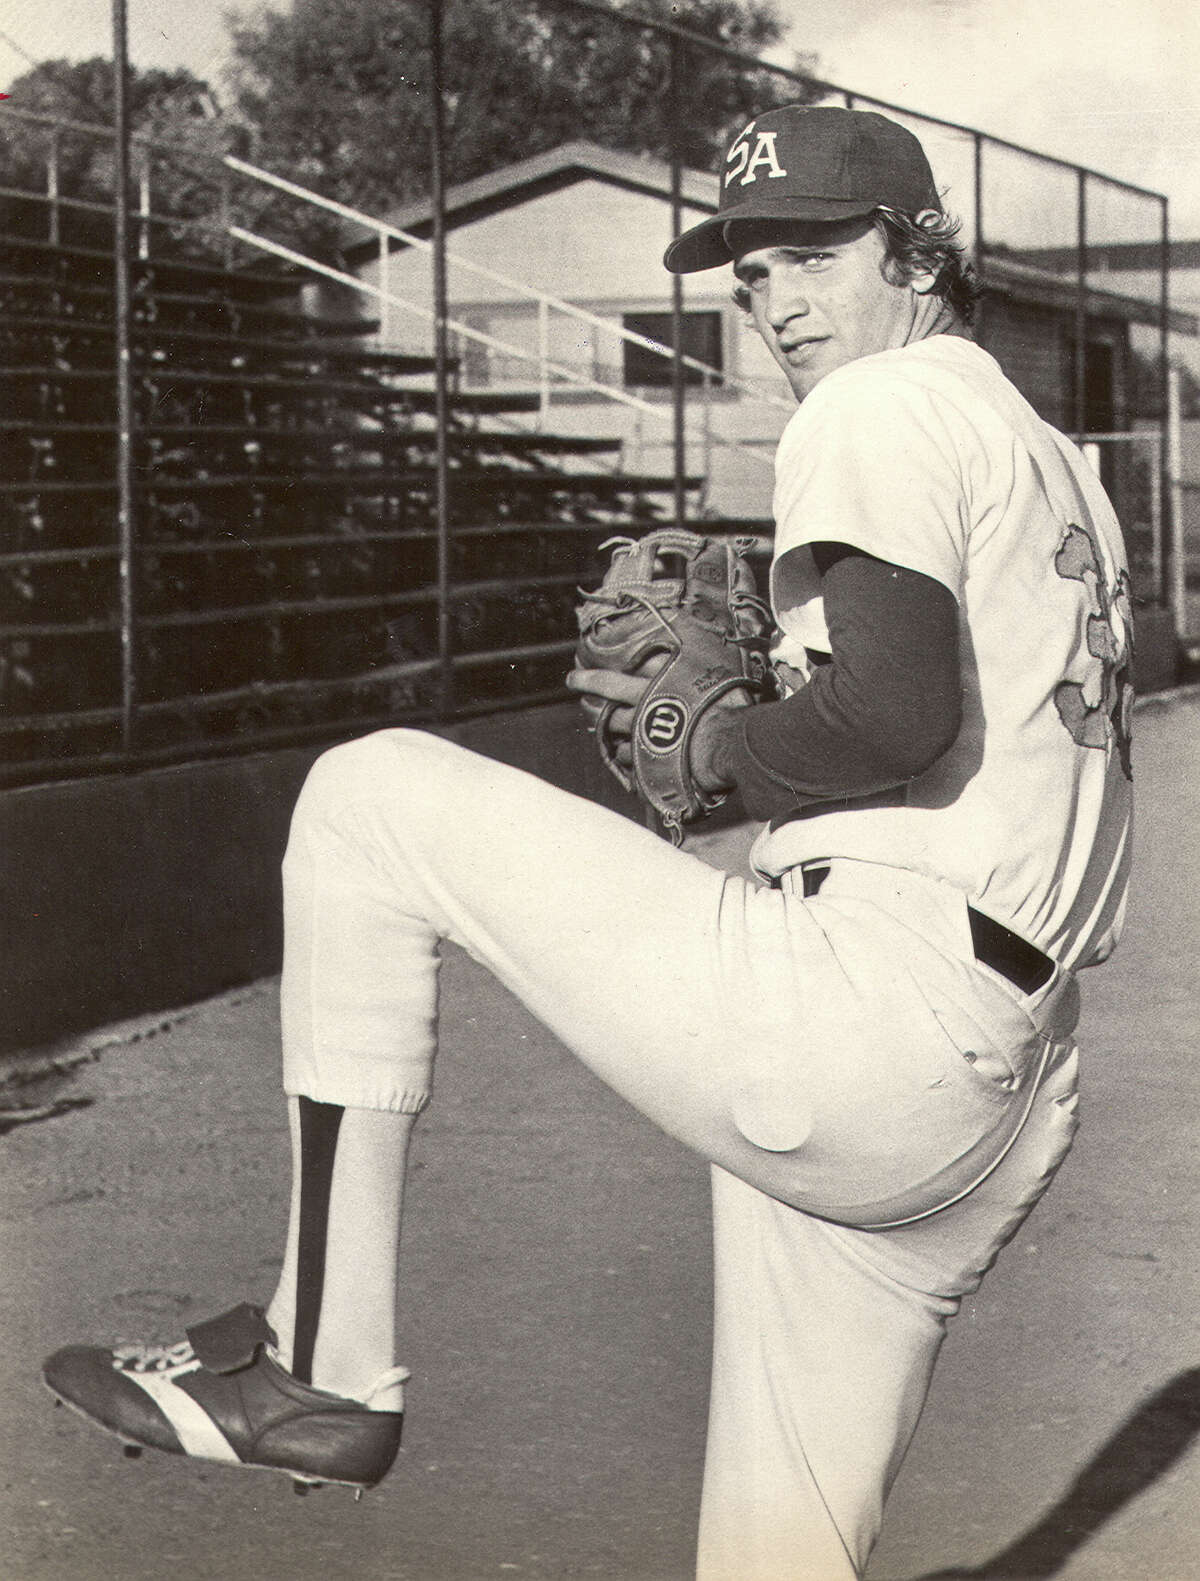 Bob Welch made his pro debut with the San Antonio Dodgers in 1977 after being a first-round draft pick out of Eastern Michigan University.